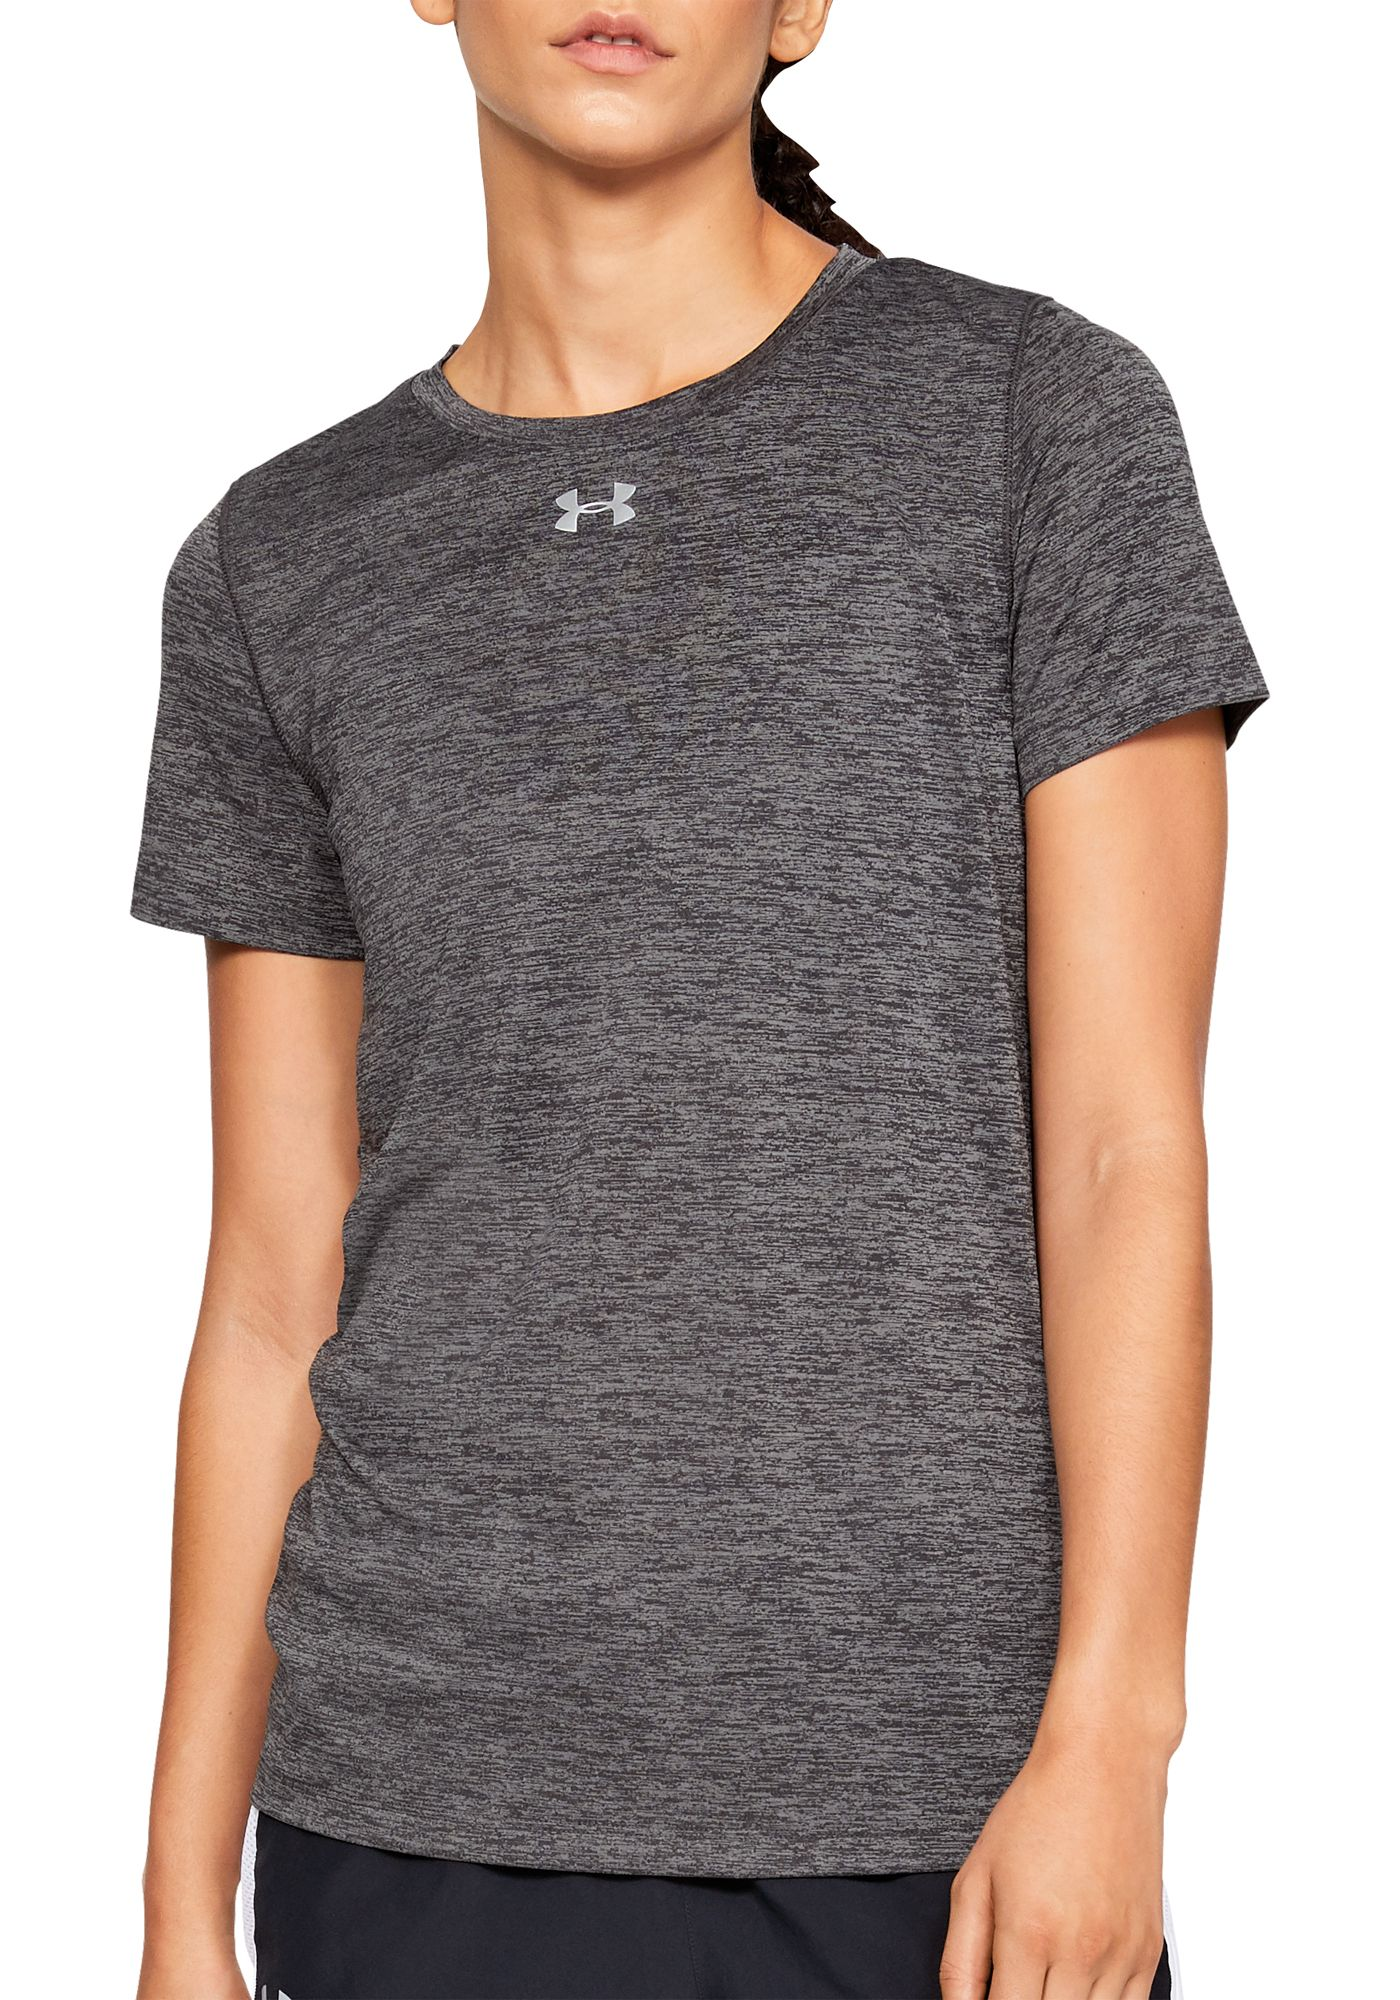 Under Armour Women's Locker 2.0 T-Shirt